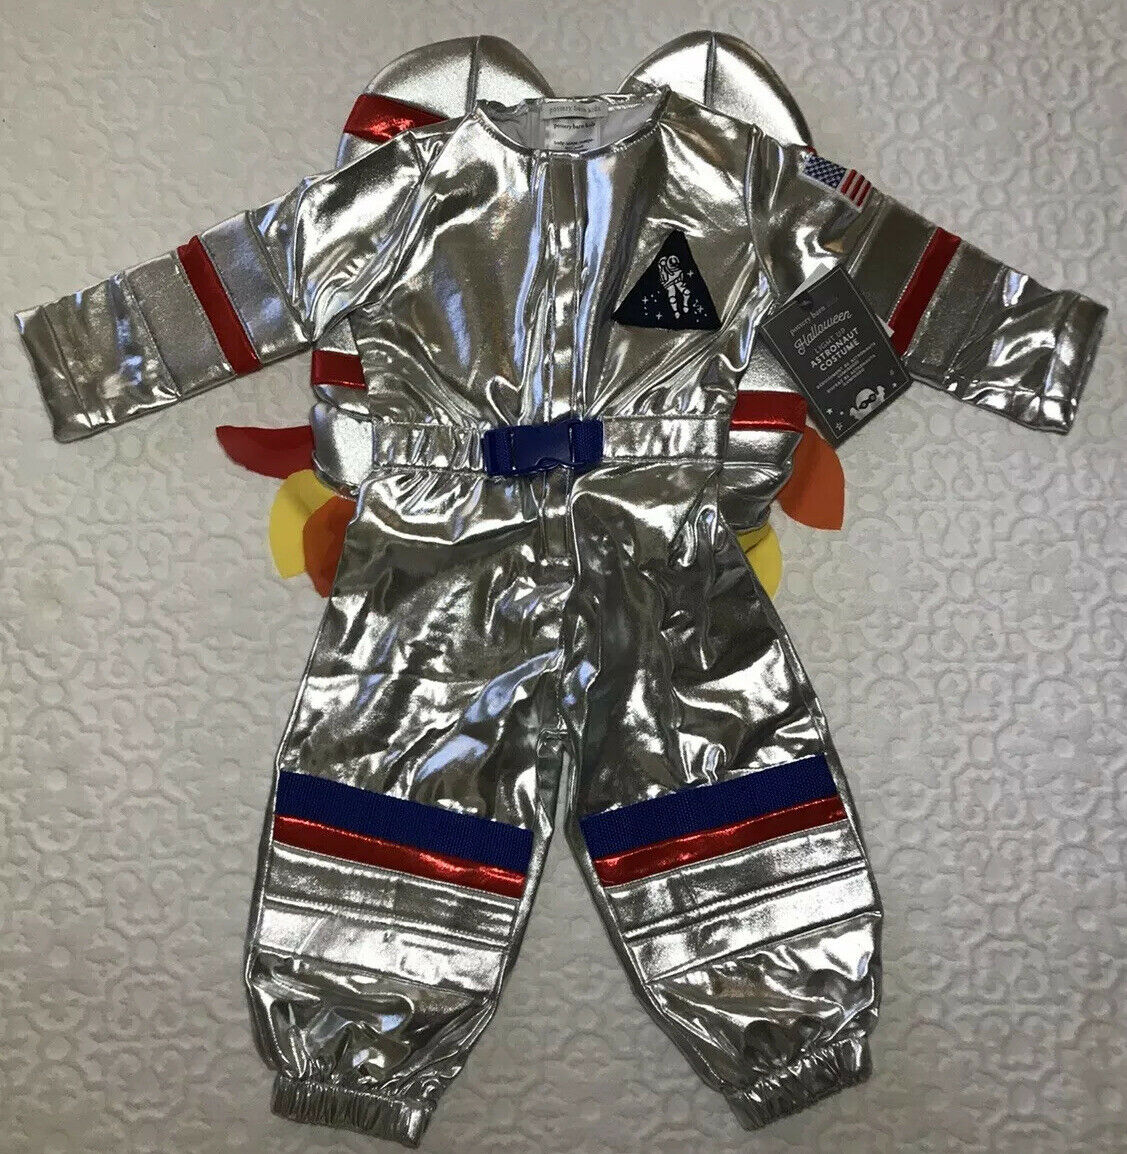 Pottery Barn Kids NEW Rocket Costume Blinking Multicolor Light up (Ages 2T)